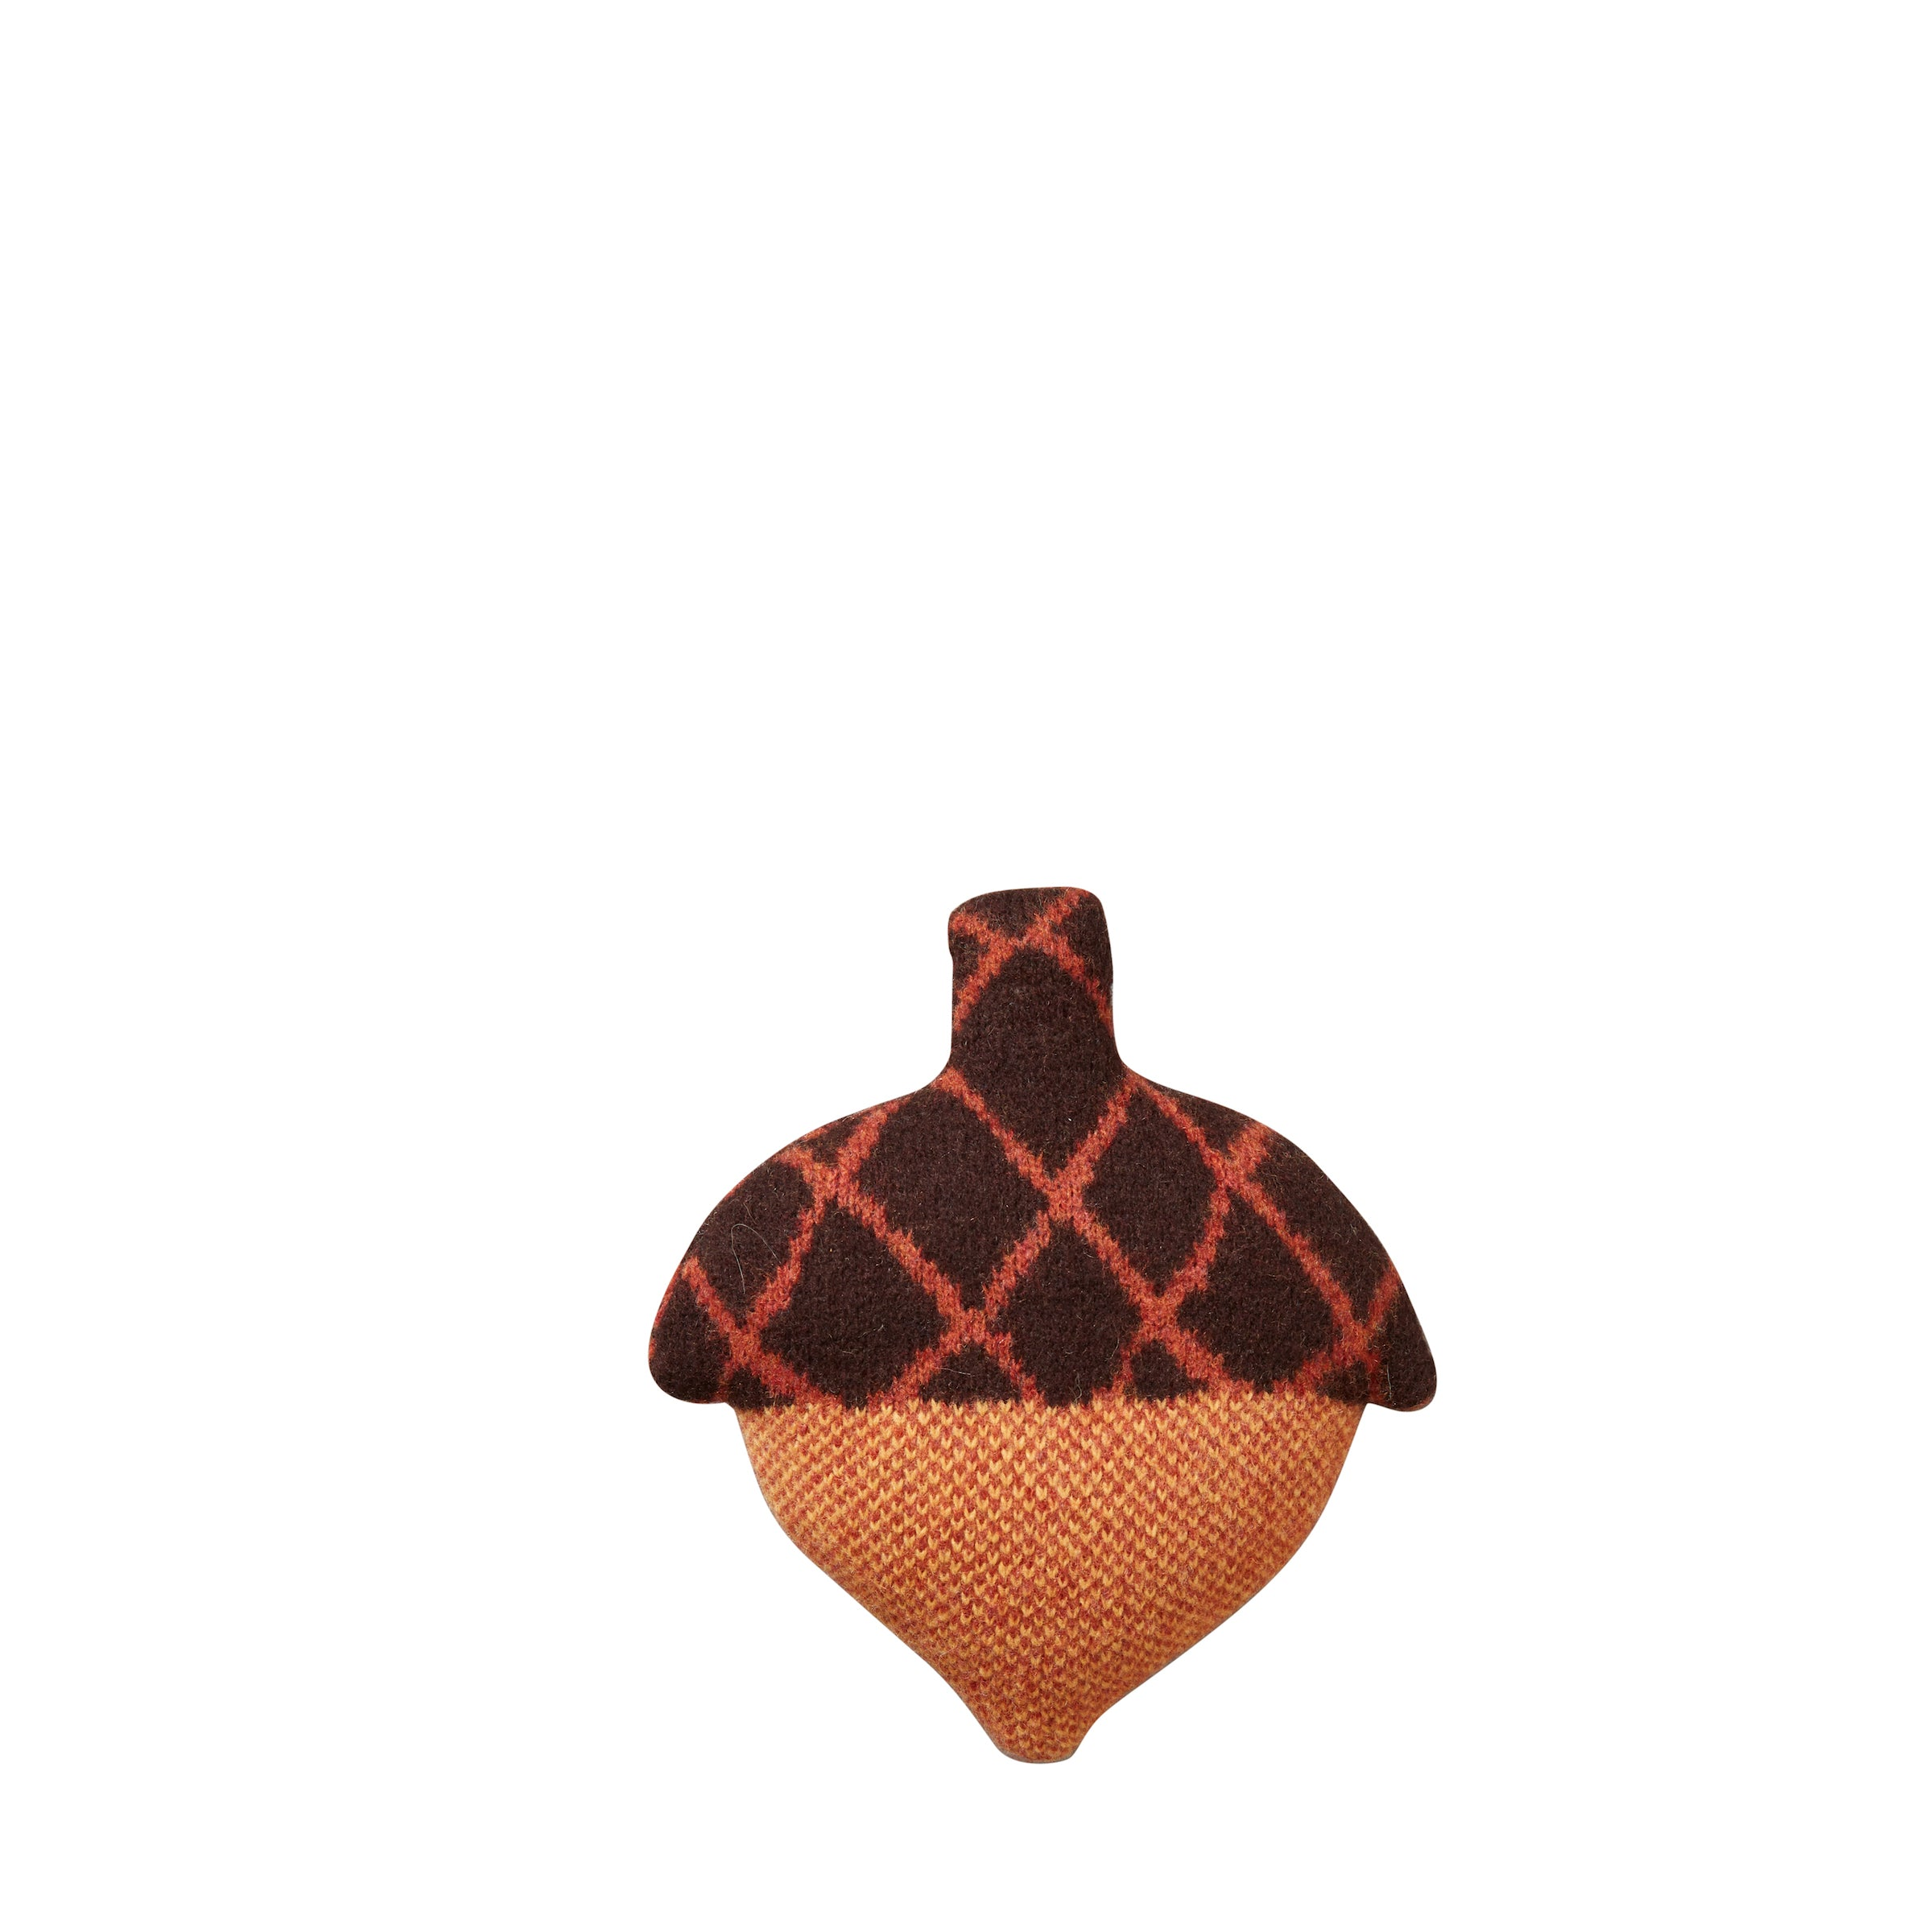 Acorn Shaped Cushion